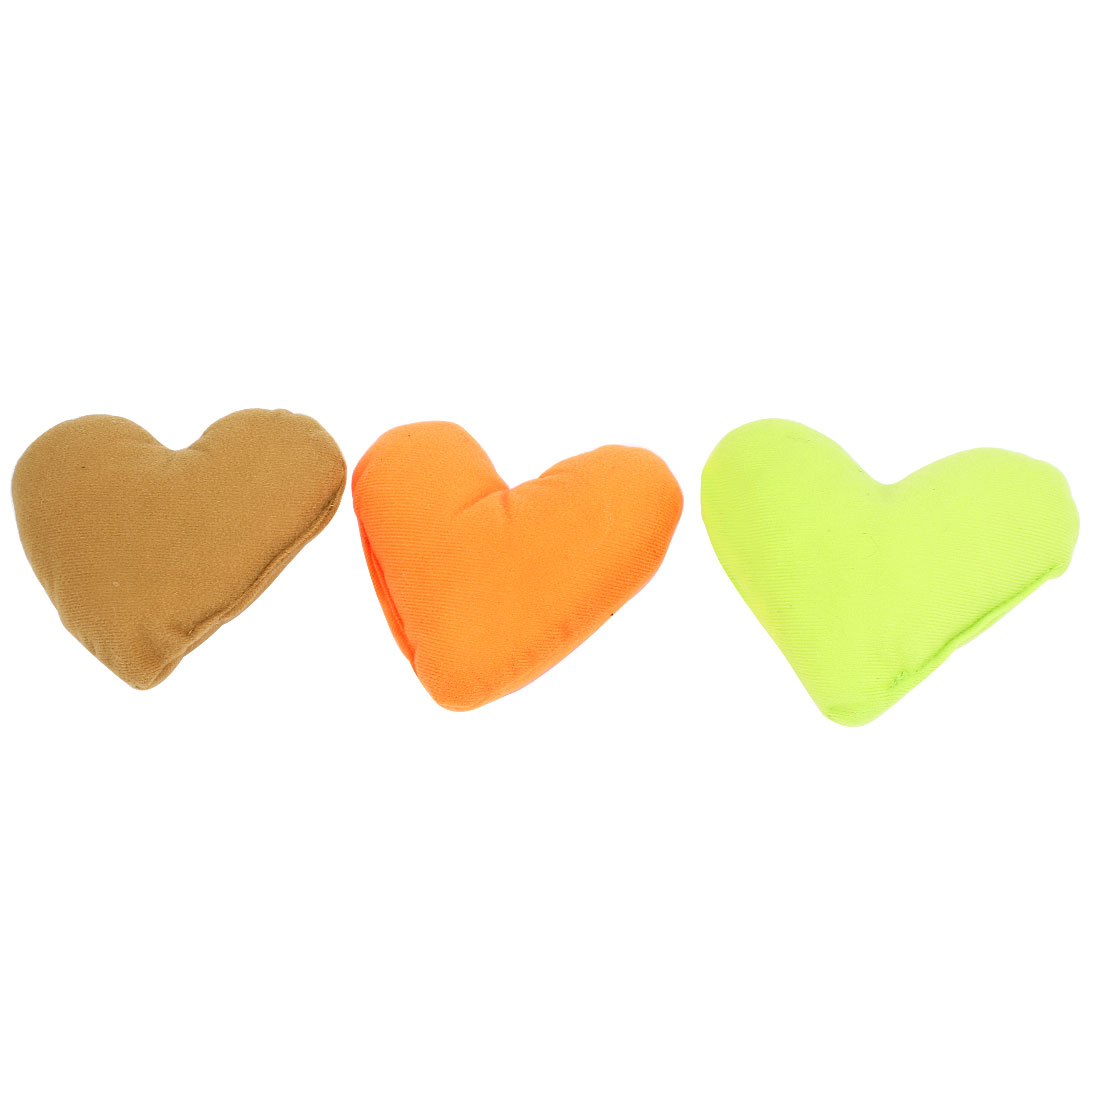 3pcs Coffee Color Green Orange Fleece Heart Design Neck Pillow Cushion Pad for Pet Dog Puppy